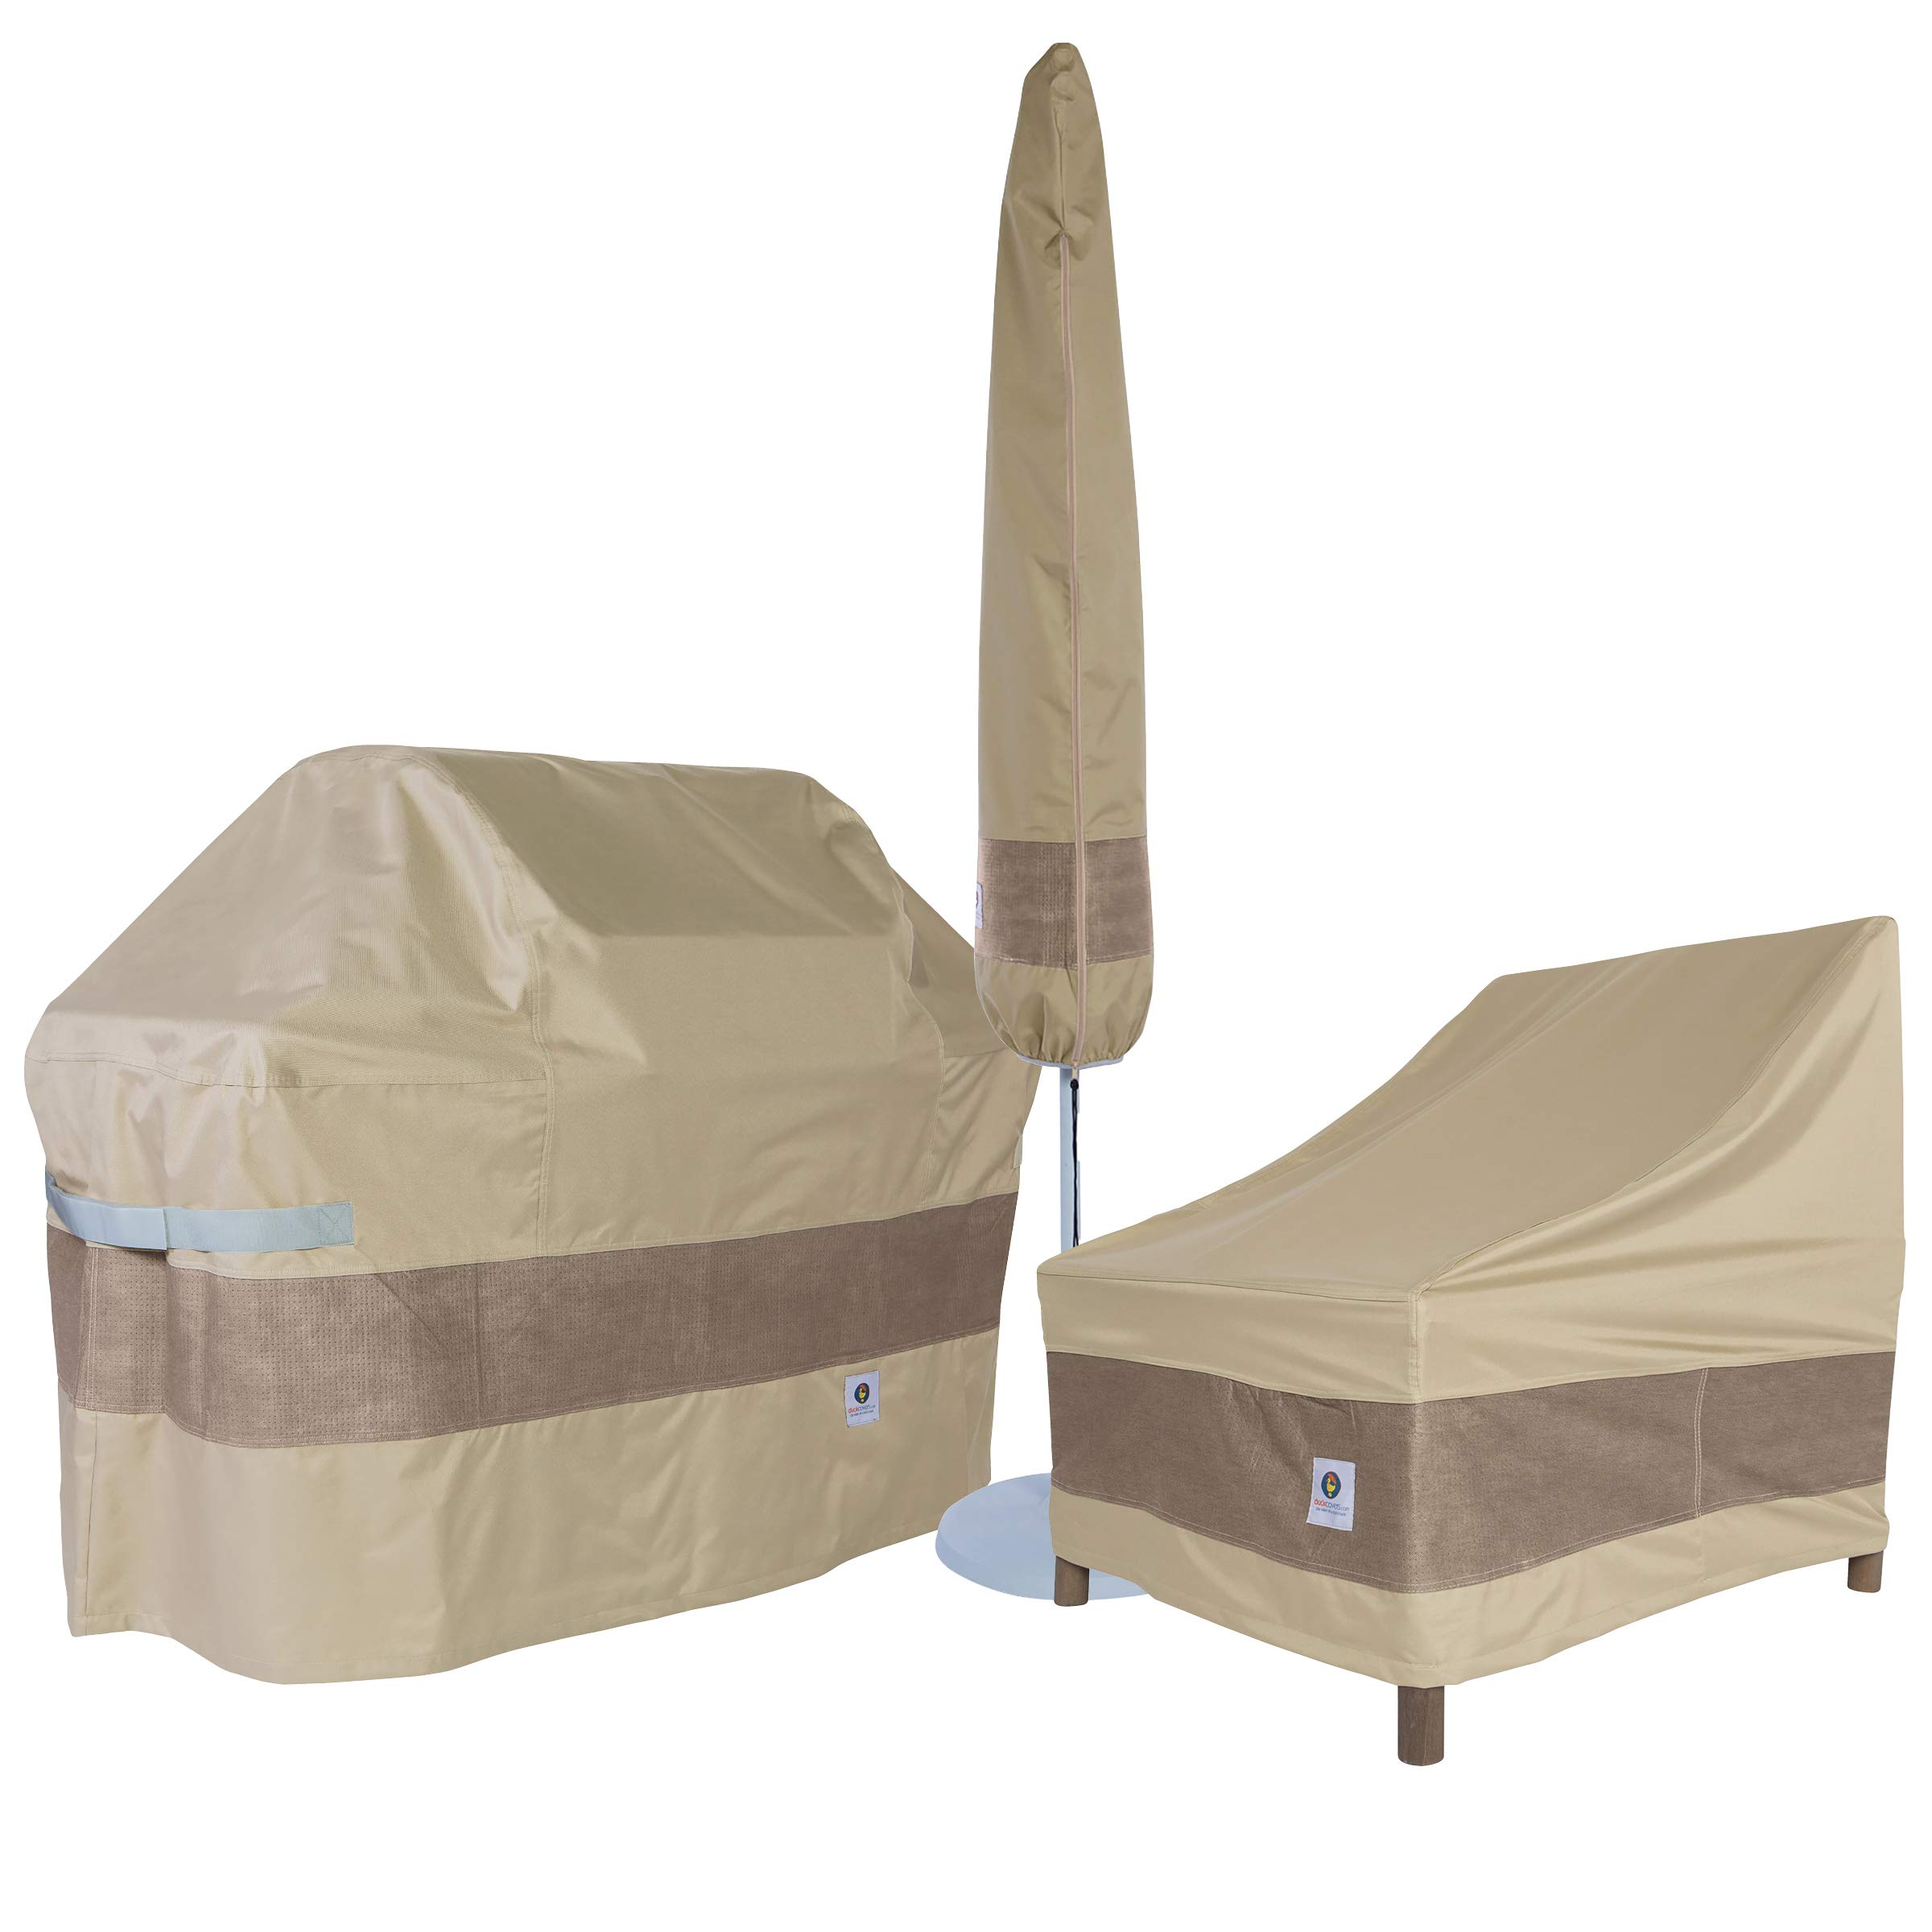 Duck Covers Elegant Offset Patio Umbrella Cover with Installation Pole, 101-Inch by Duck Covers (Image #4)